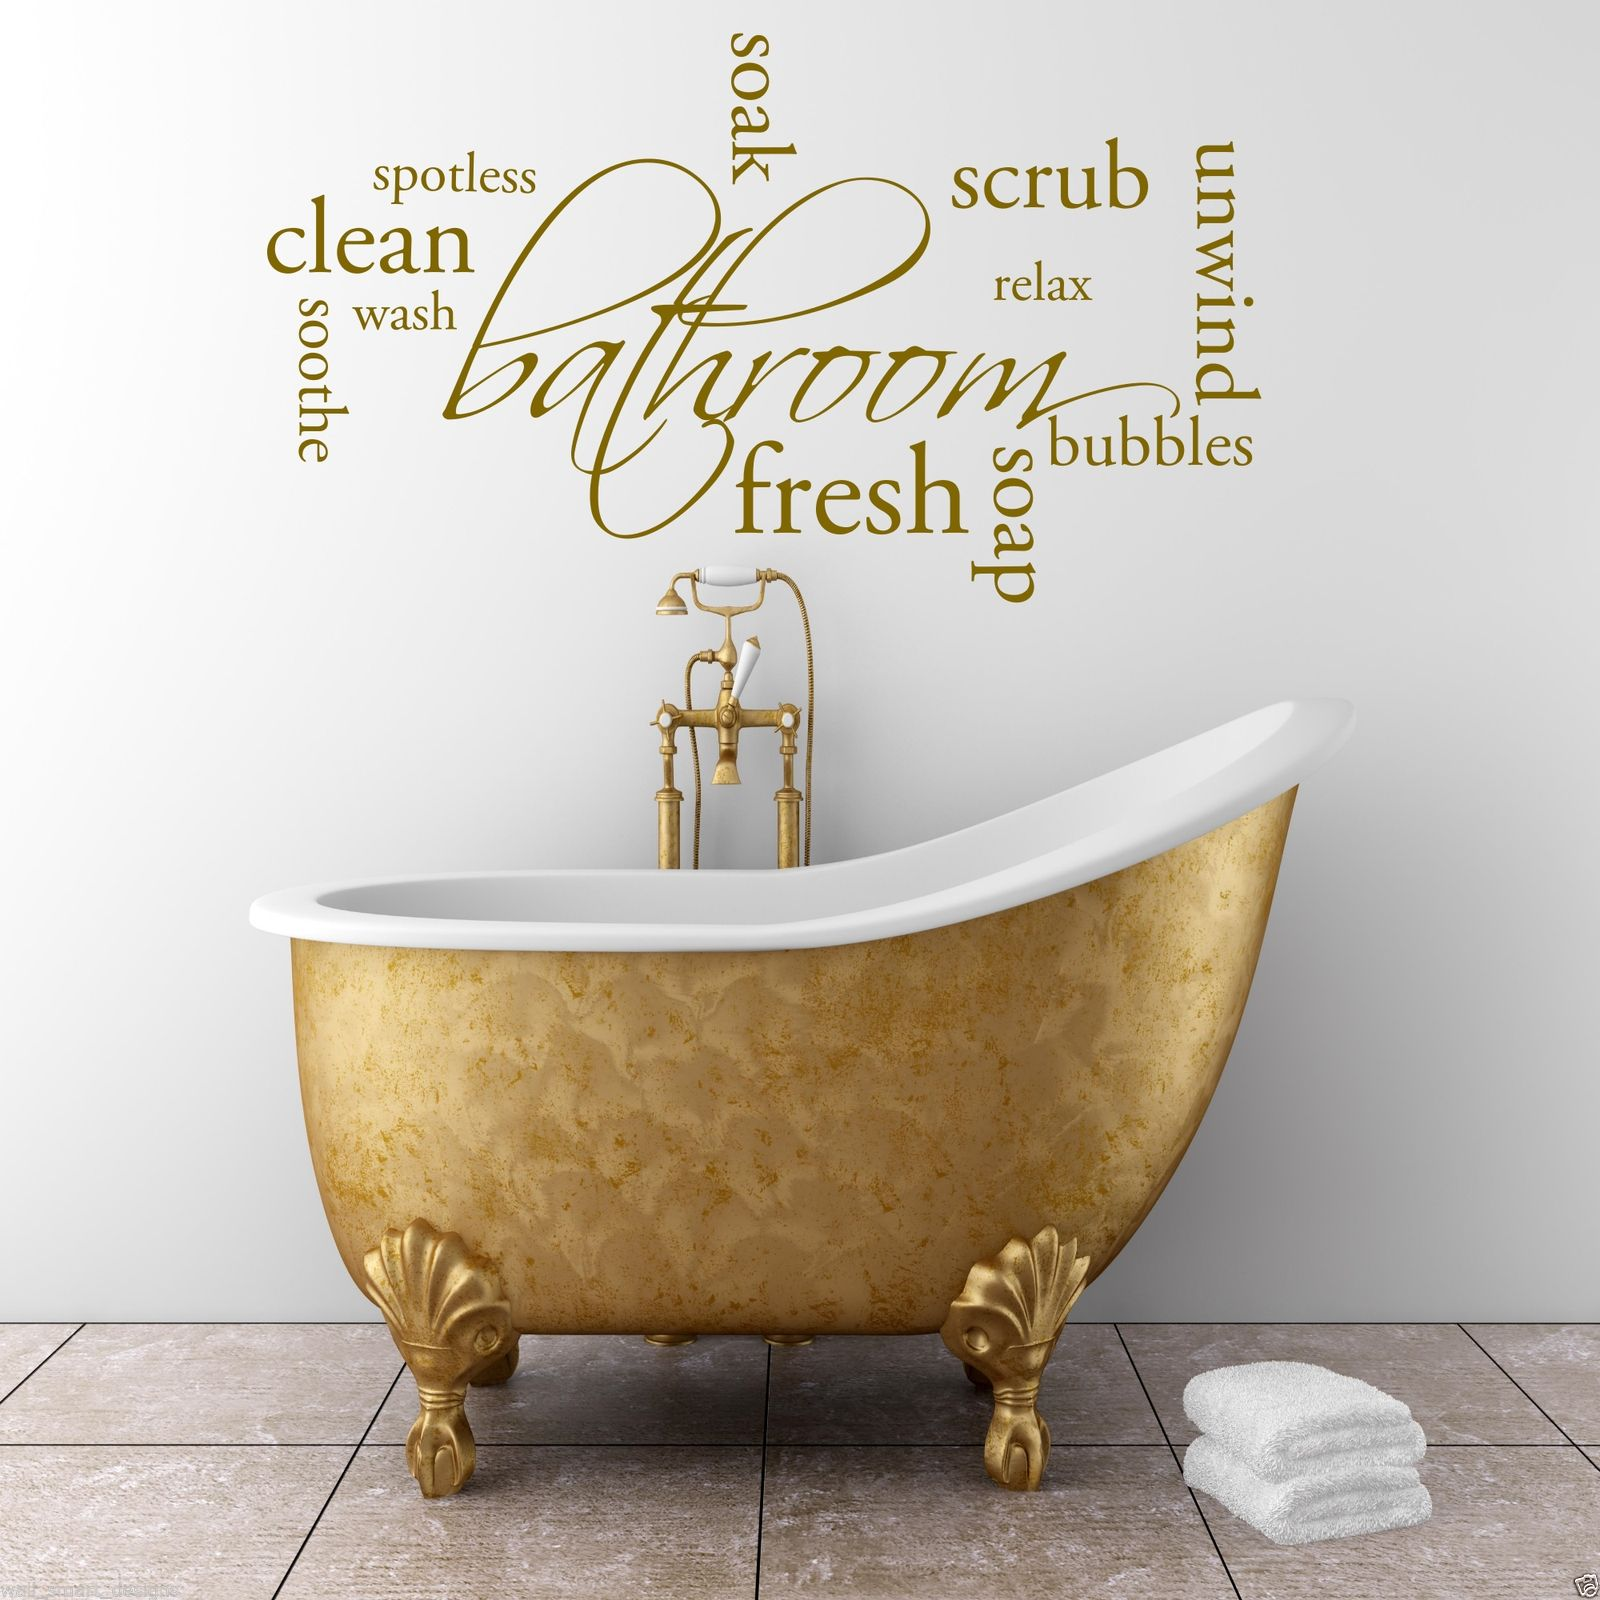 Relax soap bathroom wall art sticker quote decal mural for Relax bathroom wall decor